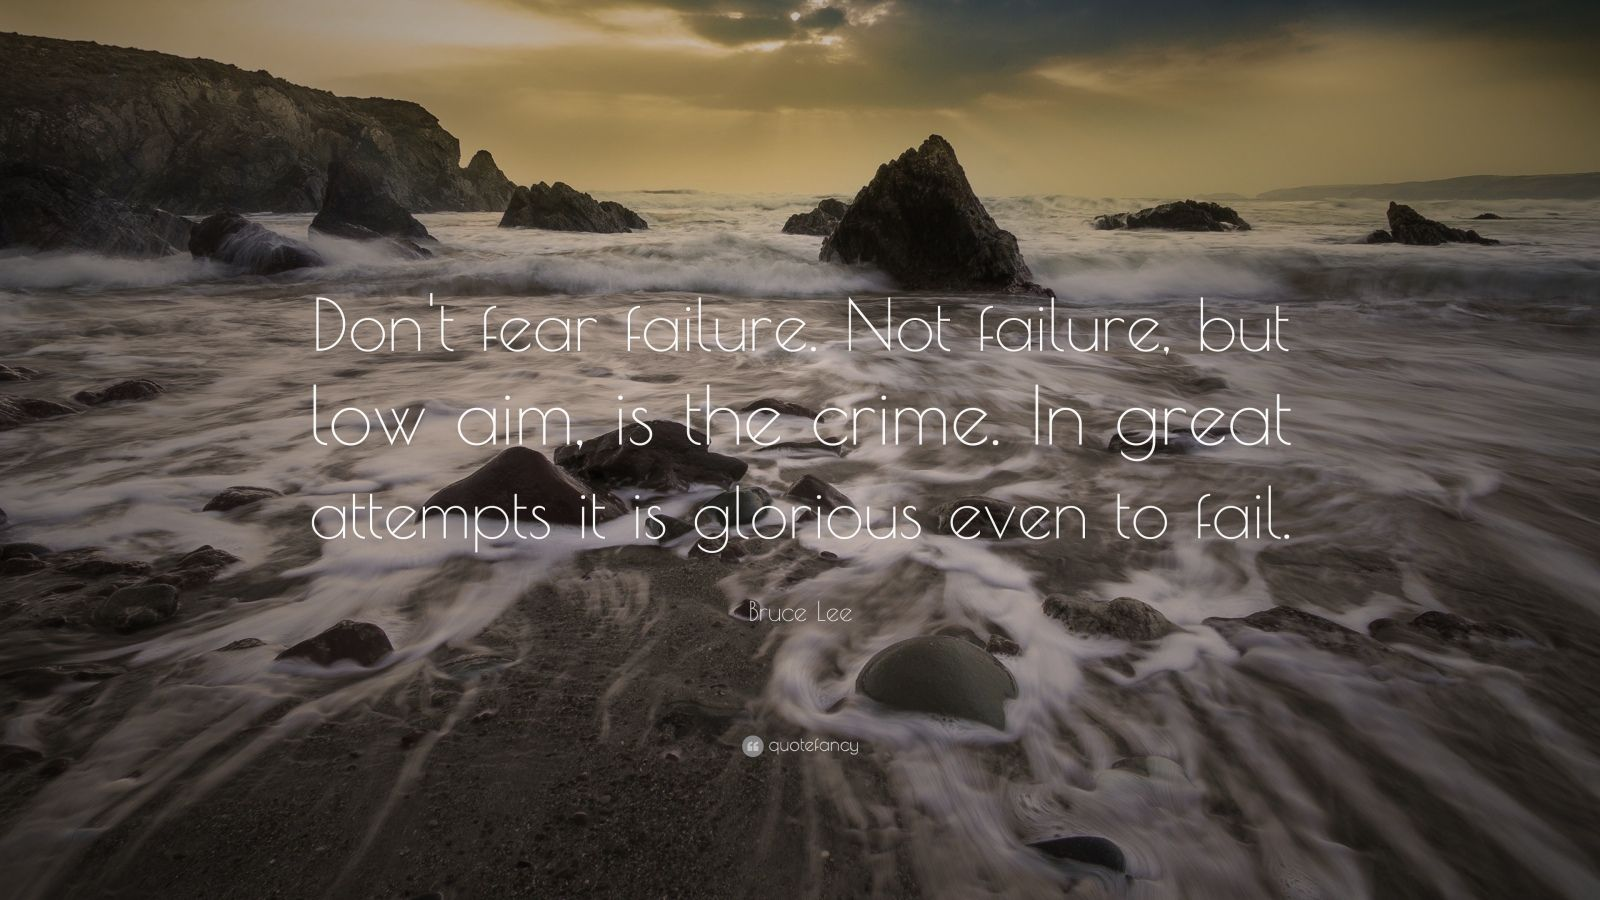 """Bruce Lee Quote: """"Don't fear failure. Not failure, but low aim, is the crime. In great attempts it is glorious even to fail."""""""